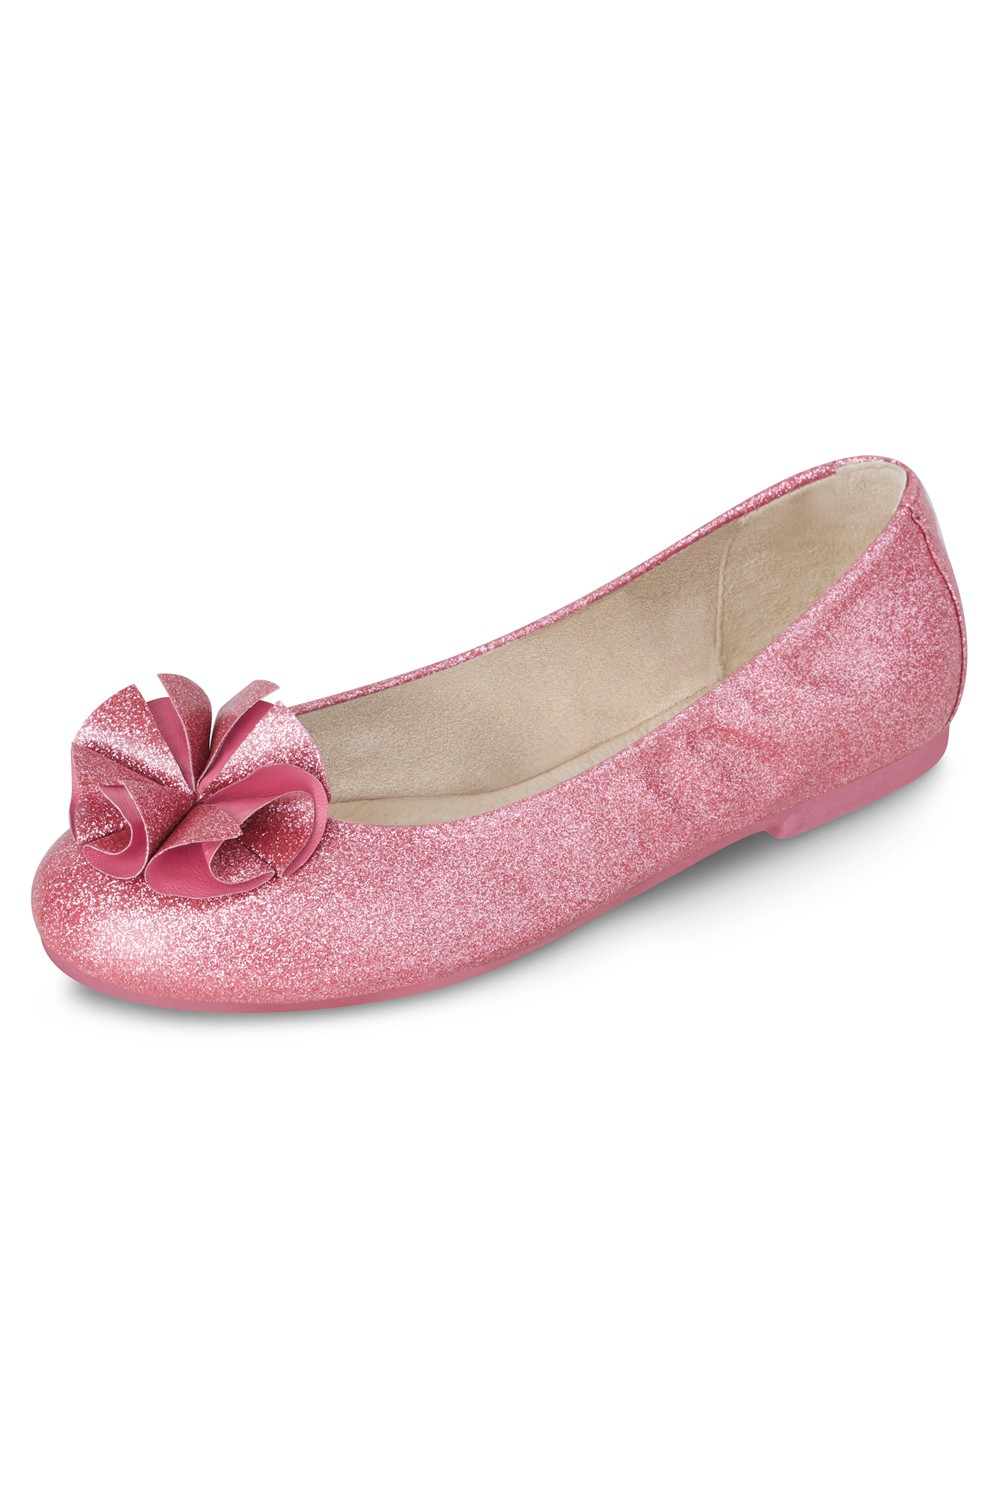 Anais - Girls Girls Fashion Shoes